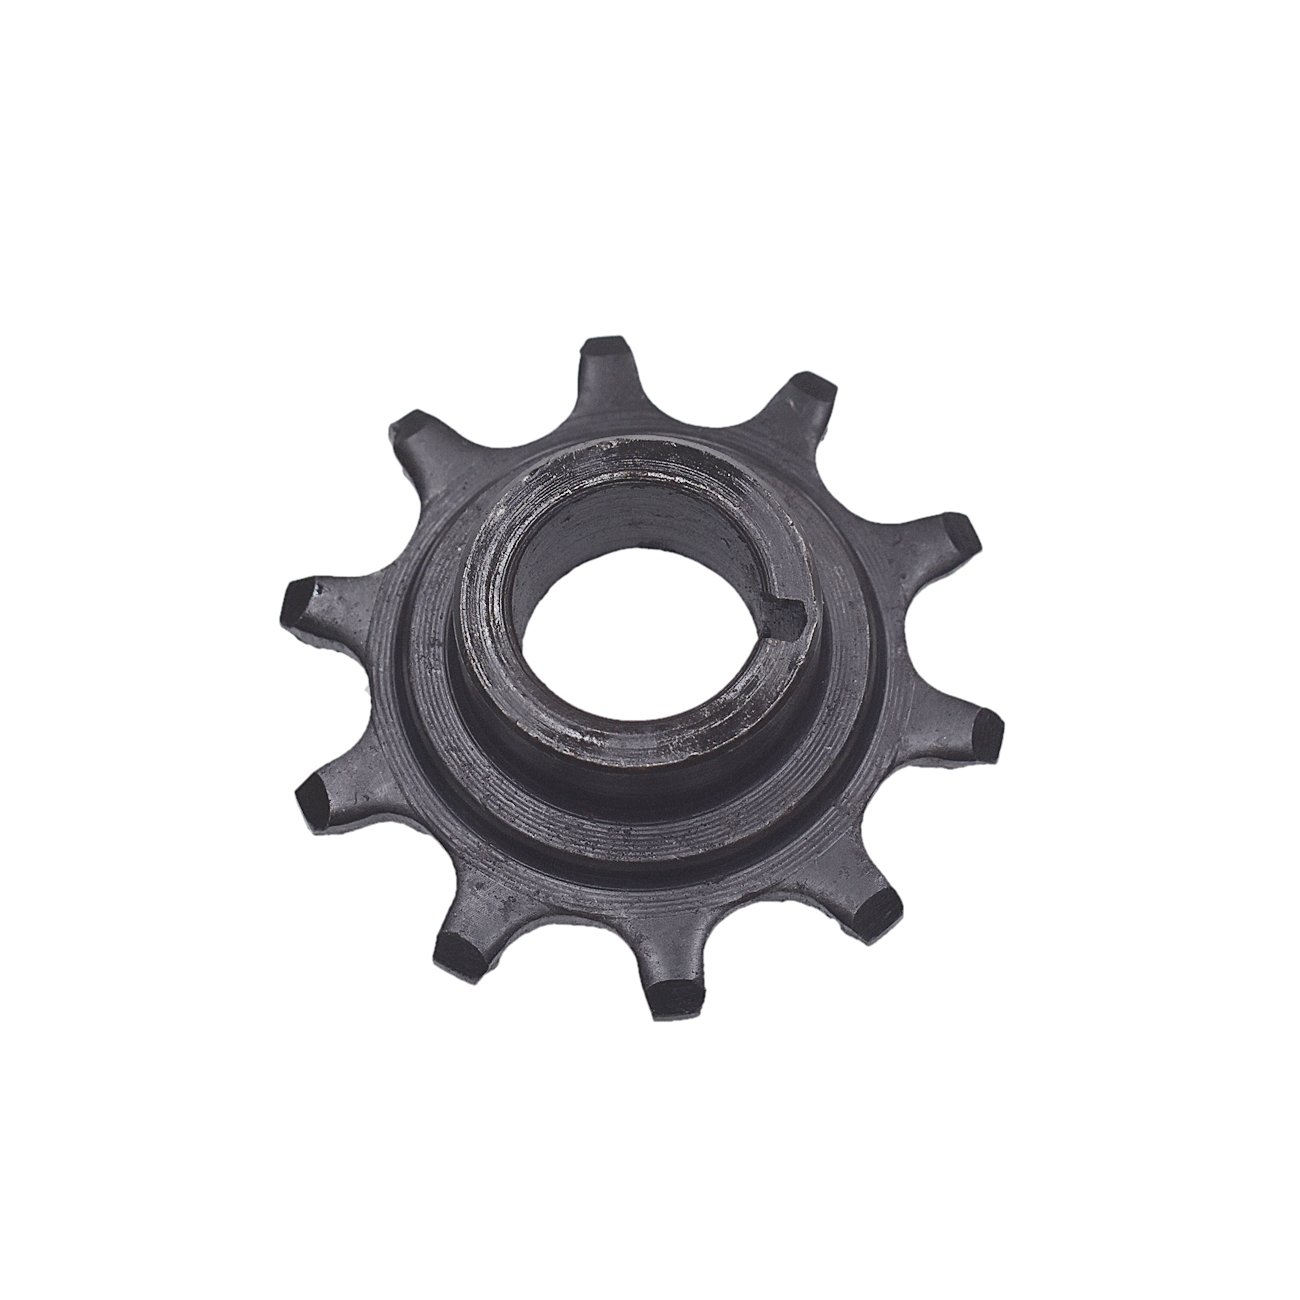 JRL 10Tooth Clutch Gear Drive Sprocket 49cc/66cc/80cc Engine Parts Motori. Huang Machinery